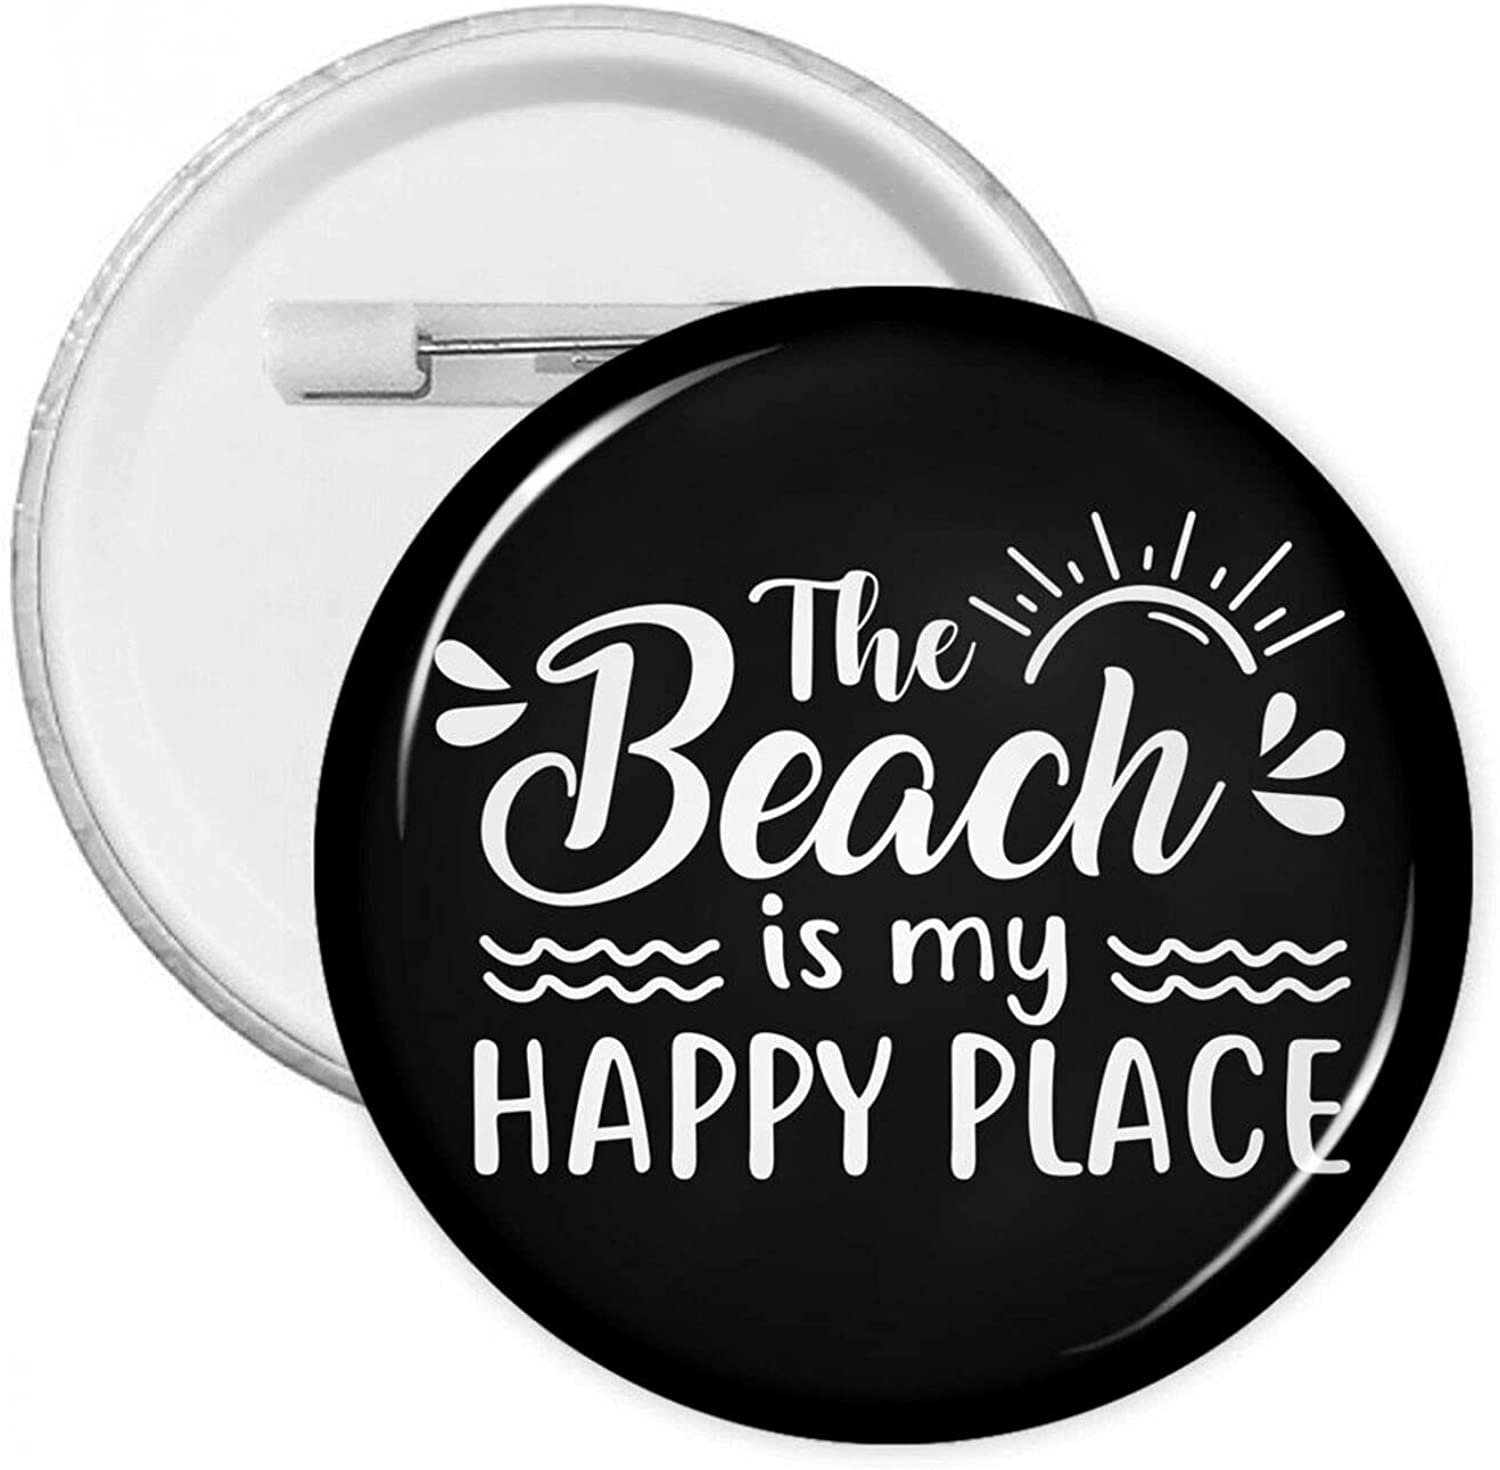 San Antonio Mall The Beach Is My Happy Place-4 Badge Clothing Button Pins Free shipping Round